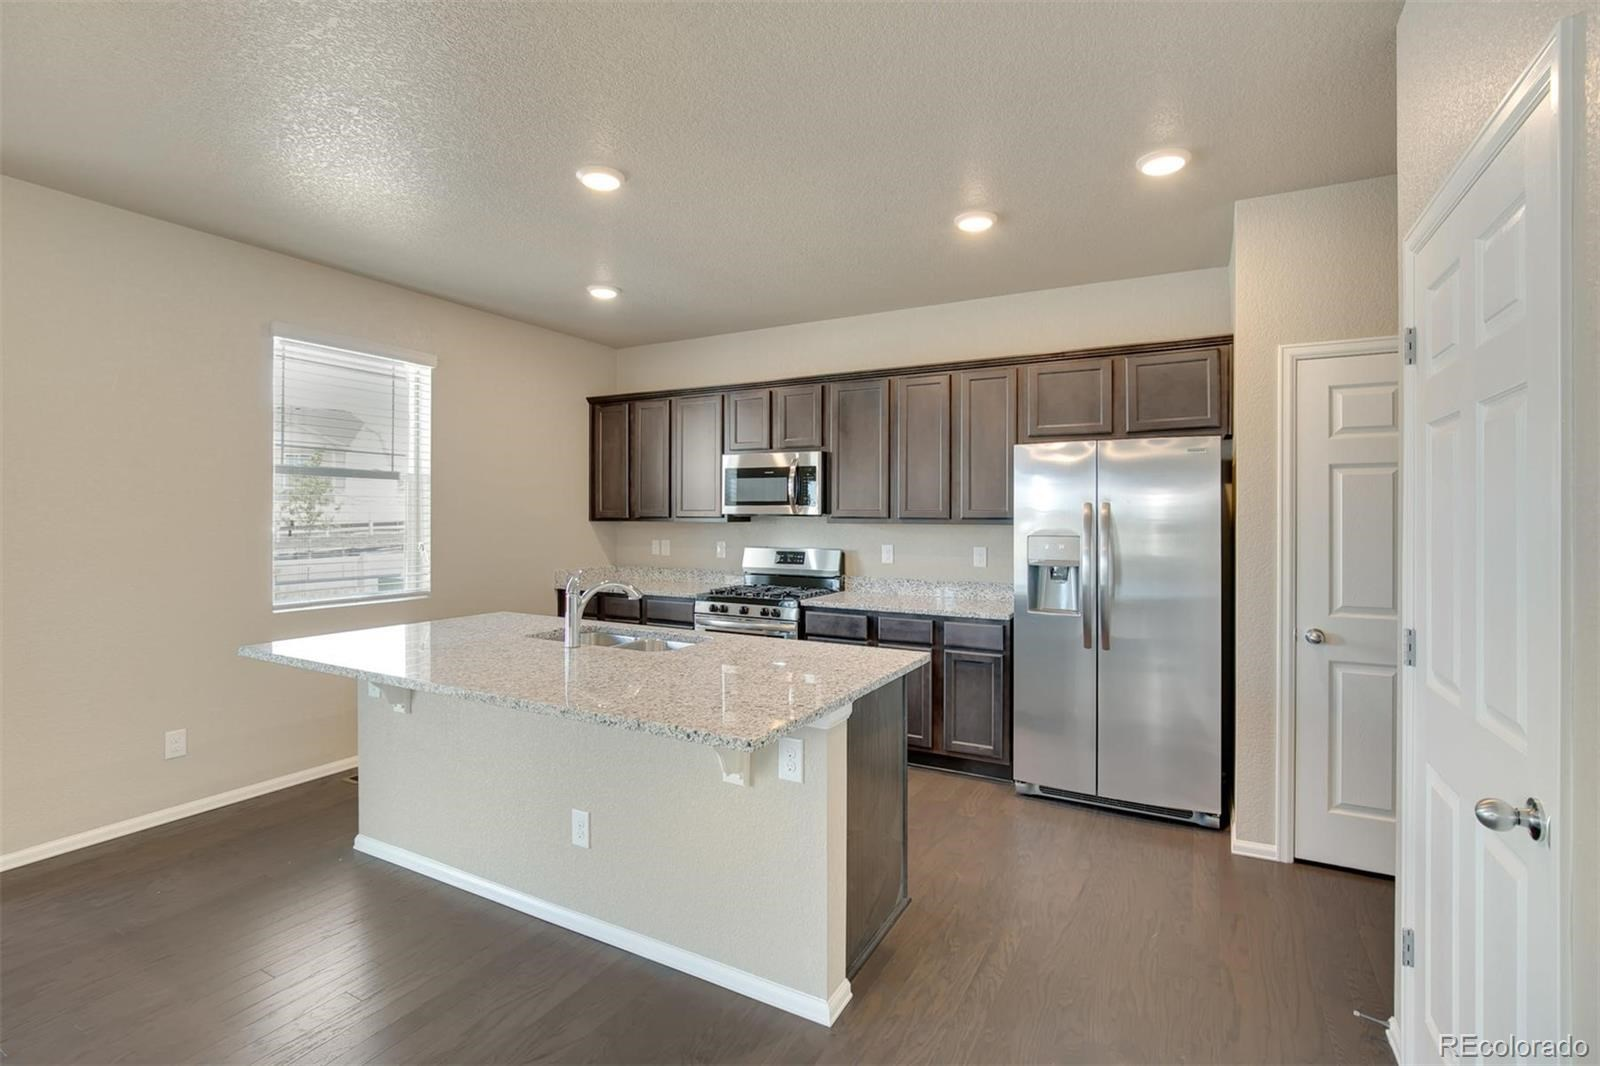 MLS# 4867430 - 7 - 915 Camberly Drive, Windsor, CO 80550